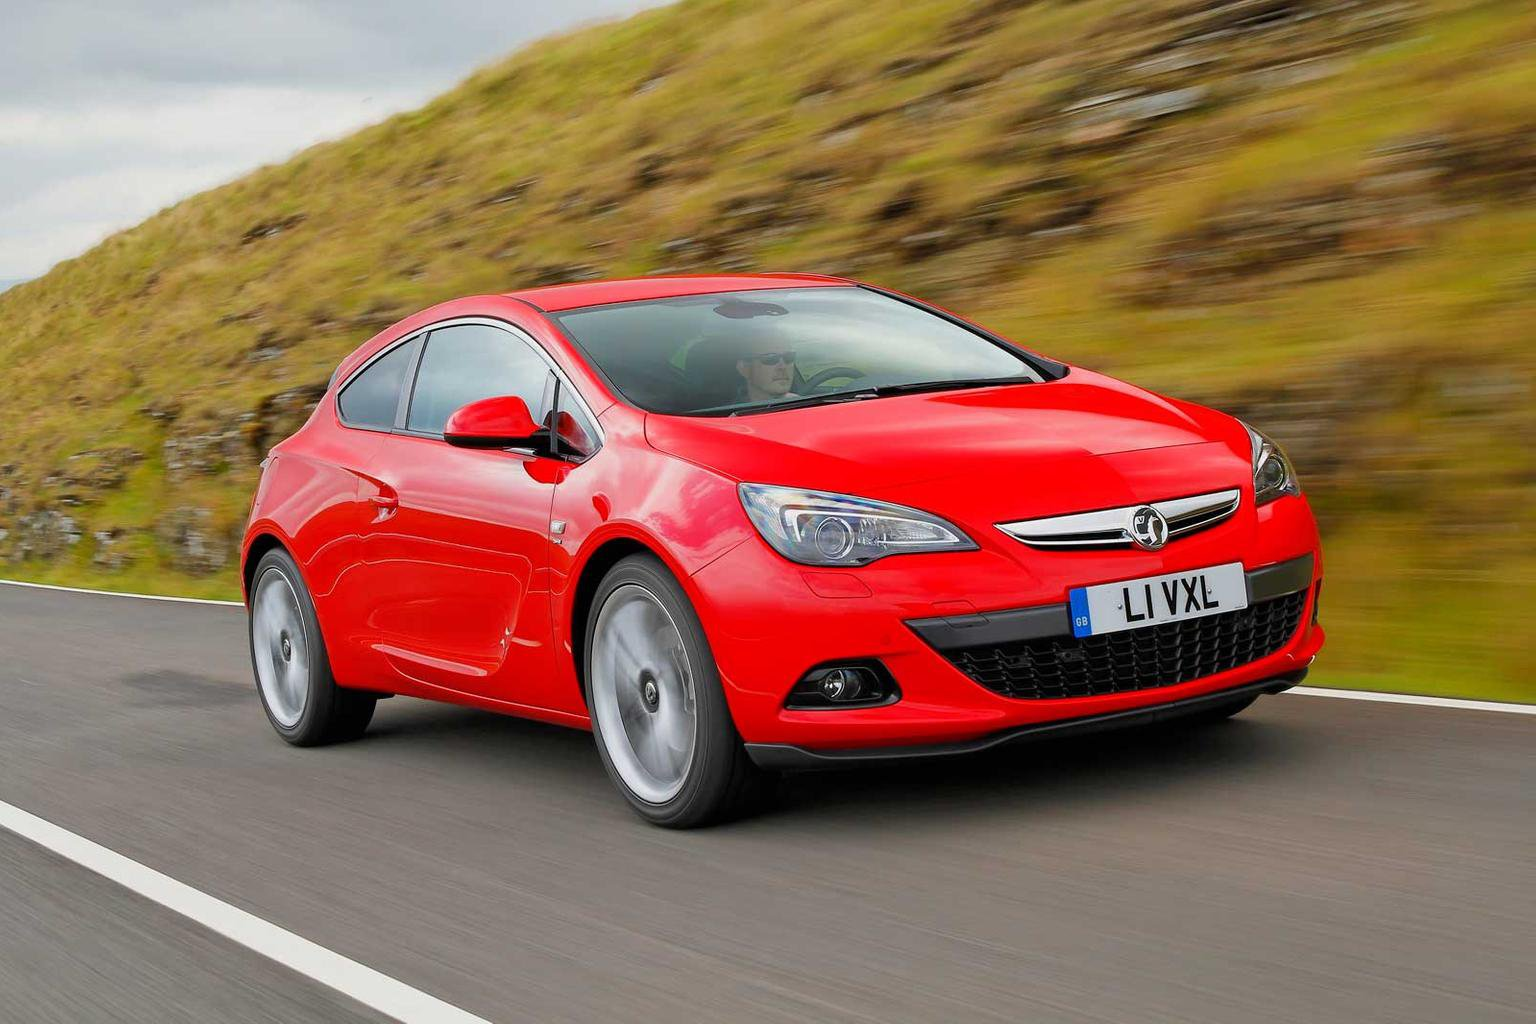 2013 Vauxhall Astra GTC Biturbo review